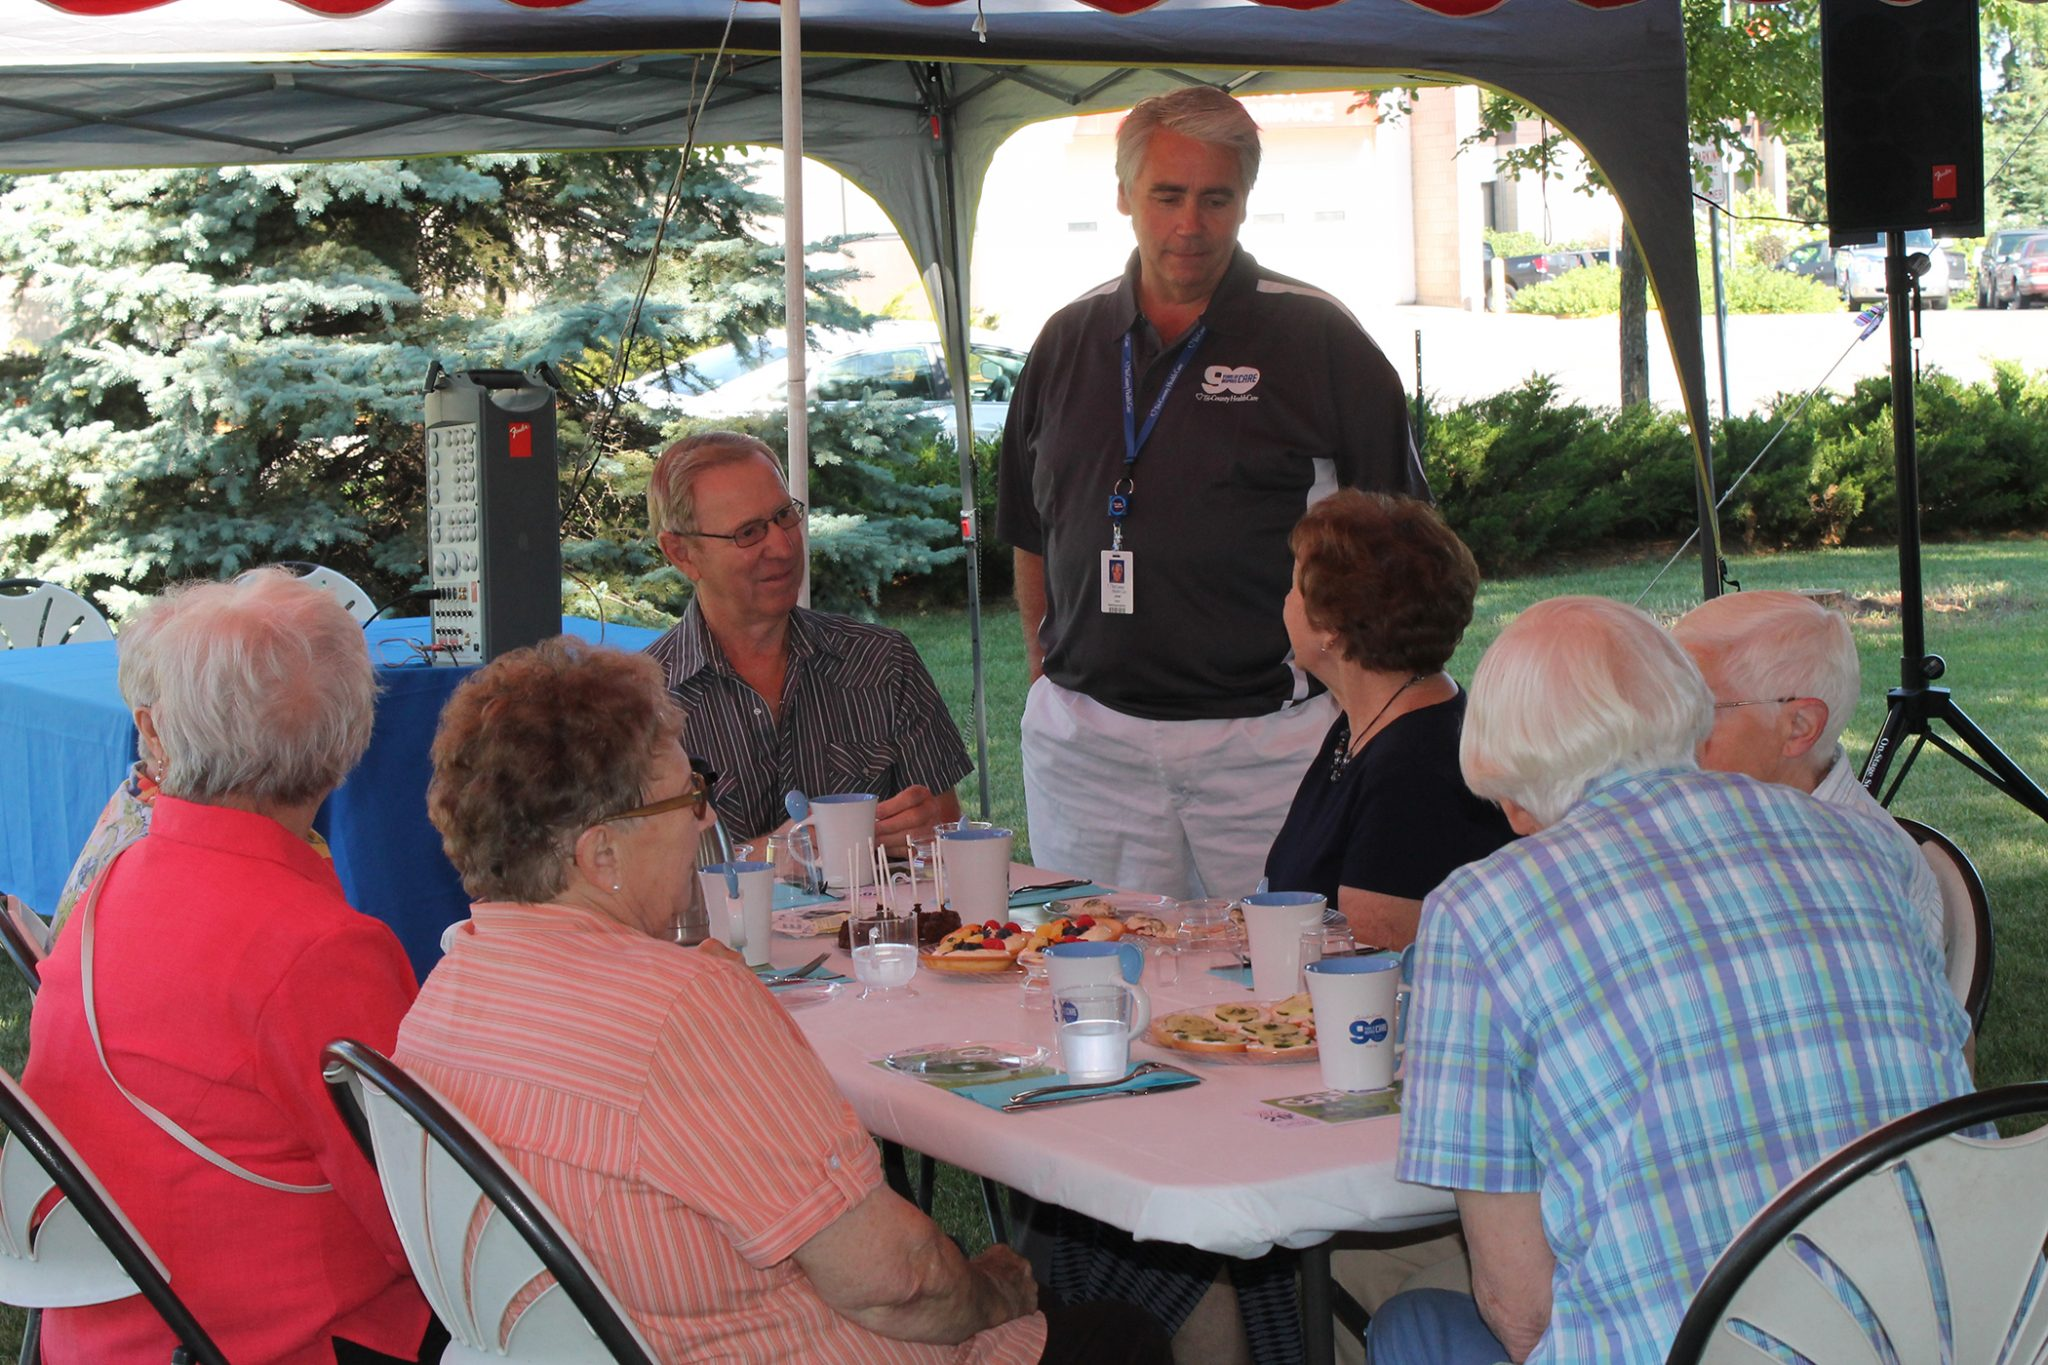 Joel Beiswenger, CEO/President of TCHC speaking with guests at the Retirement Tea.